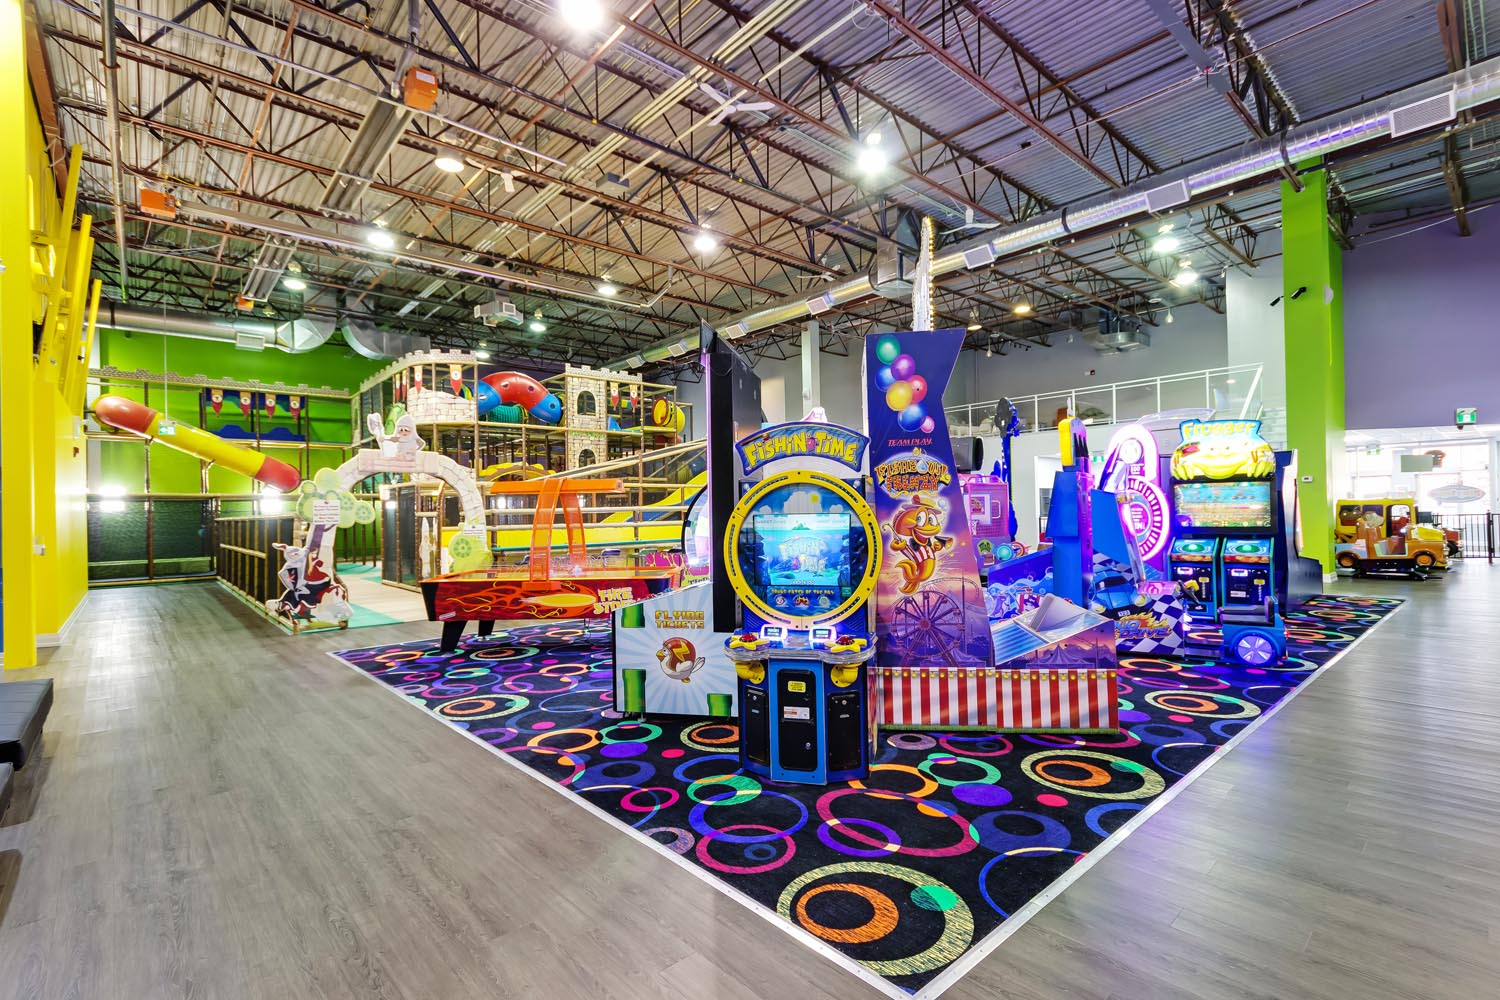 Indoor Jungle Gym, Trampolines, & Arcade Games